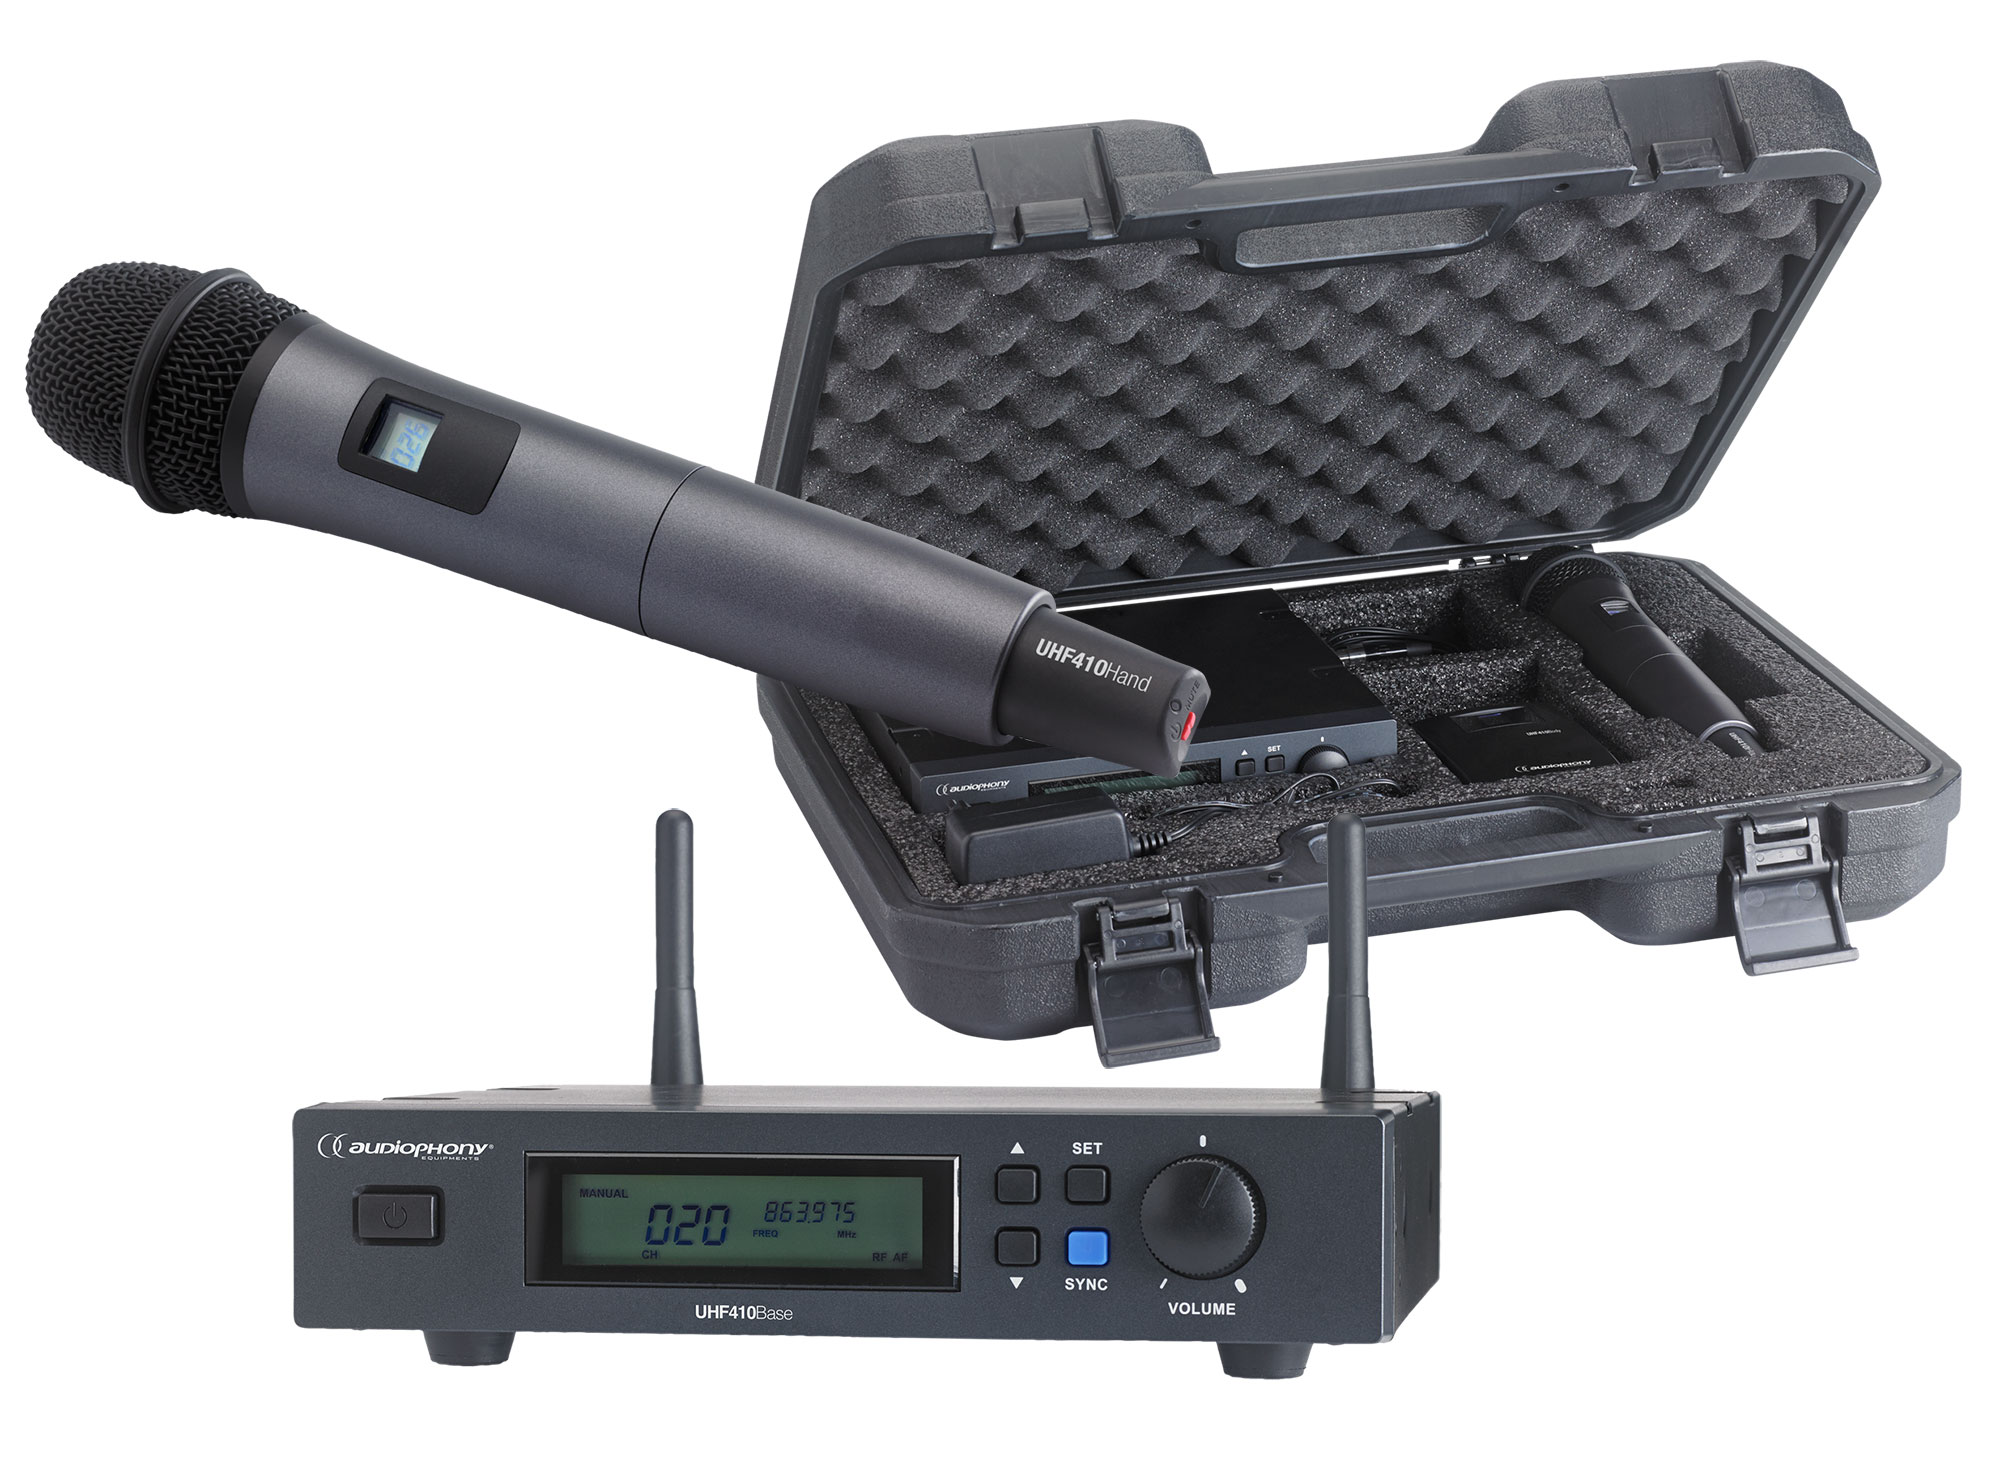 Set including a UHF True Diversity receiver and a handheld microphone in its transport case - 800MHz range